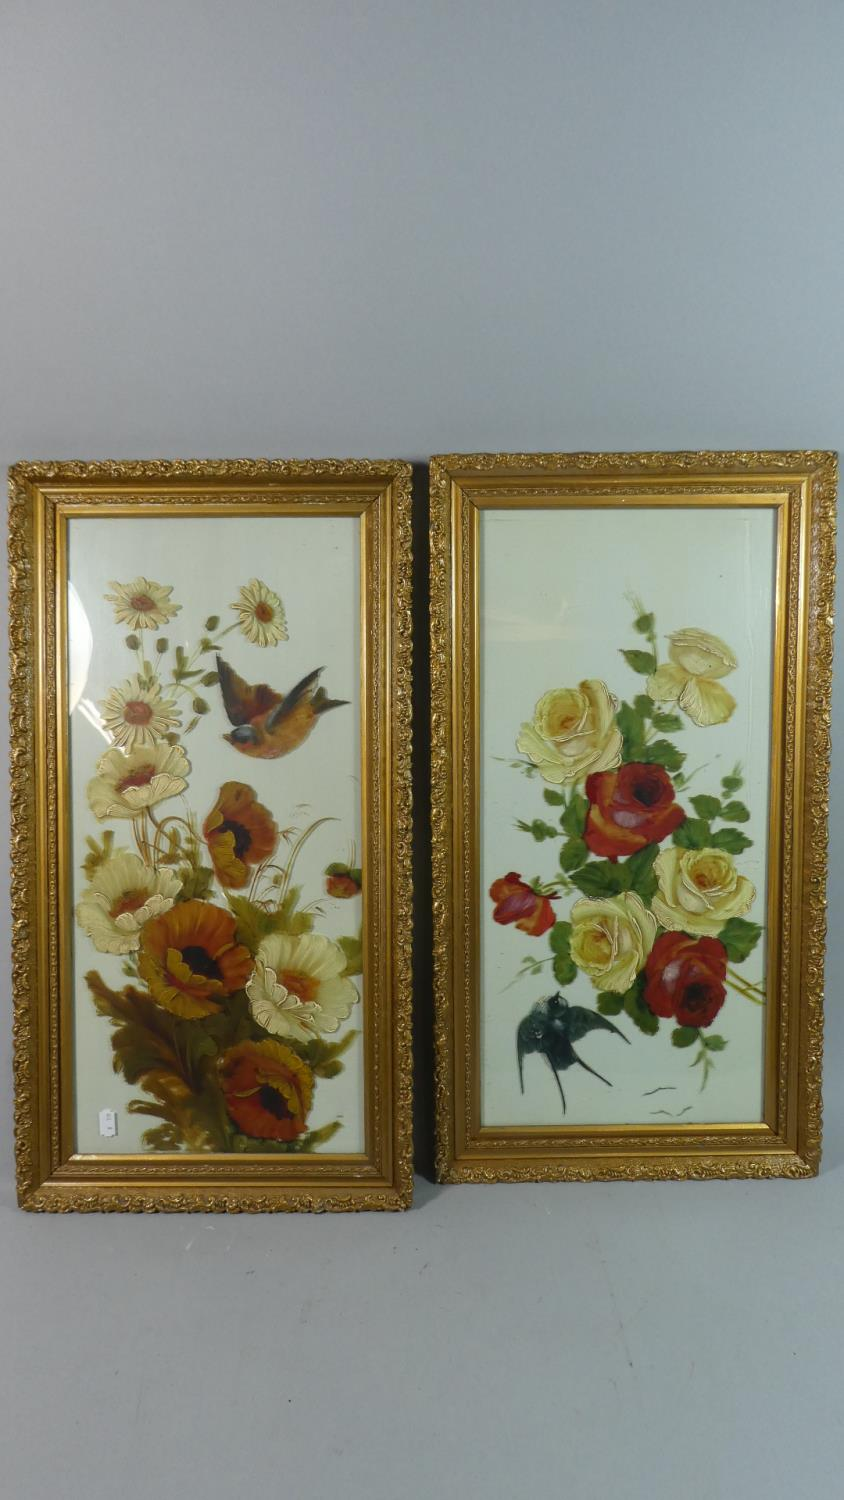 Lot 250 - A Pair of Victorian Gilt Framed Still Life Paintings on Opaque Glass, Flowers and Birds, Each 59cm